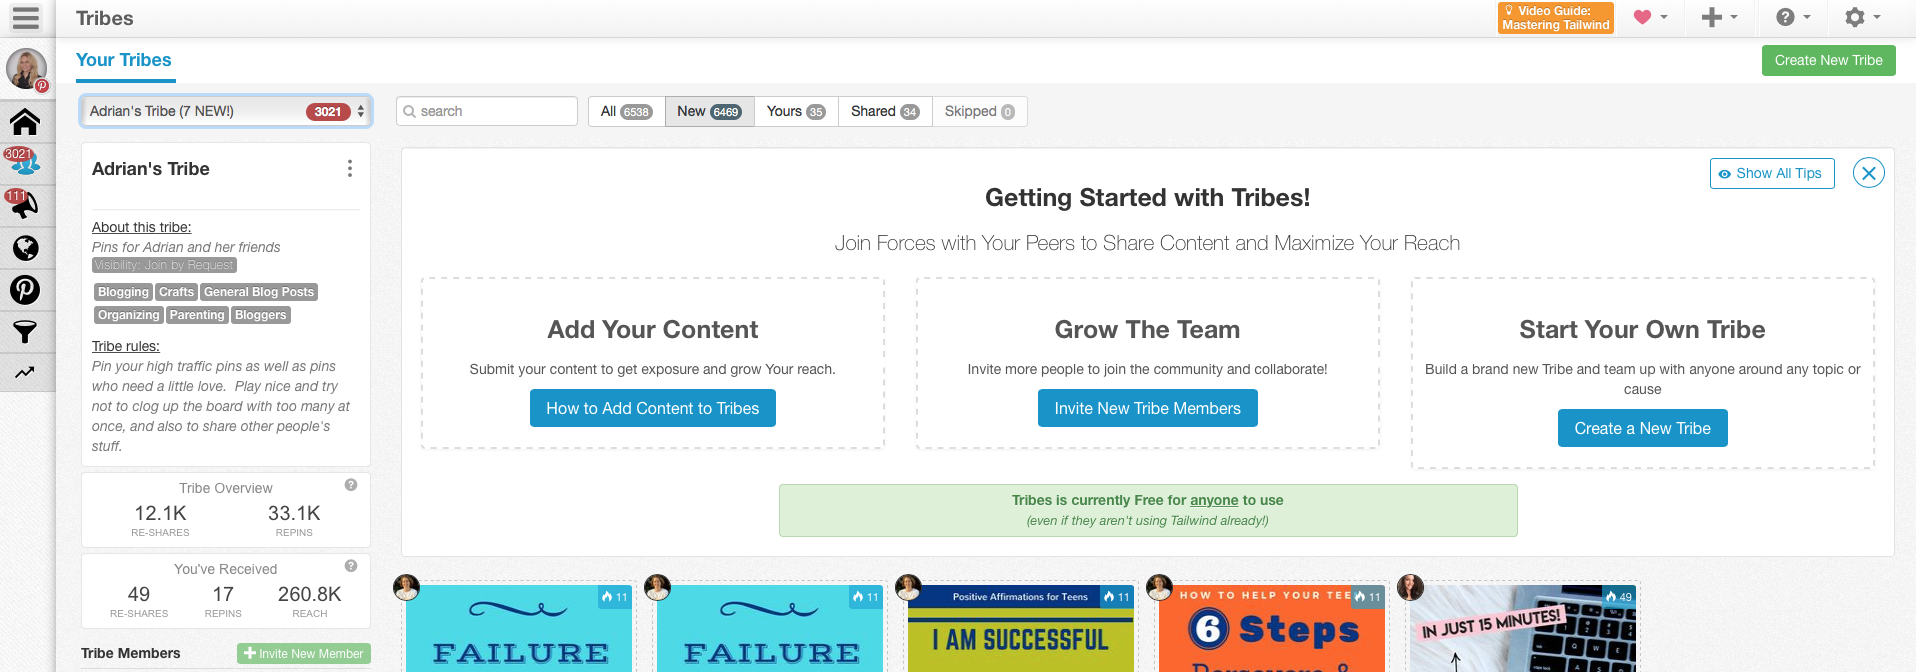 Tailwind Tribes dashboard. Look at the reach you get by pinning to the tribes. This is part of the reason why Tailwind can be such a valuable asset.